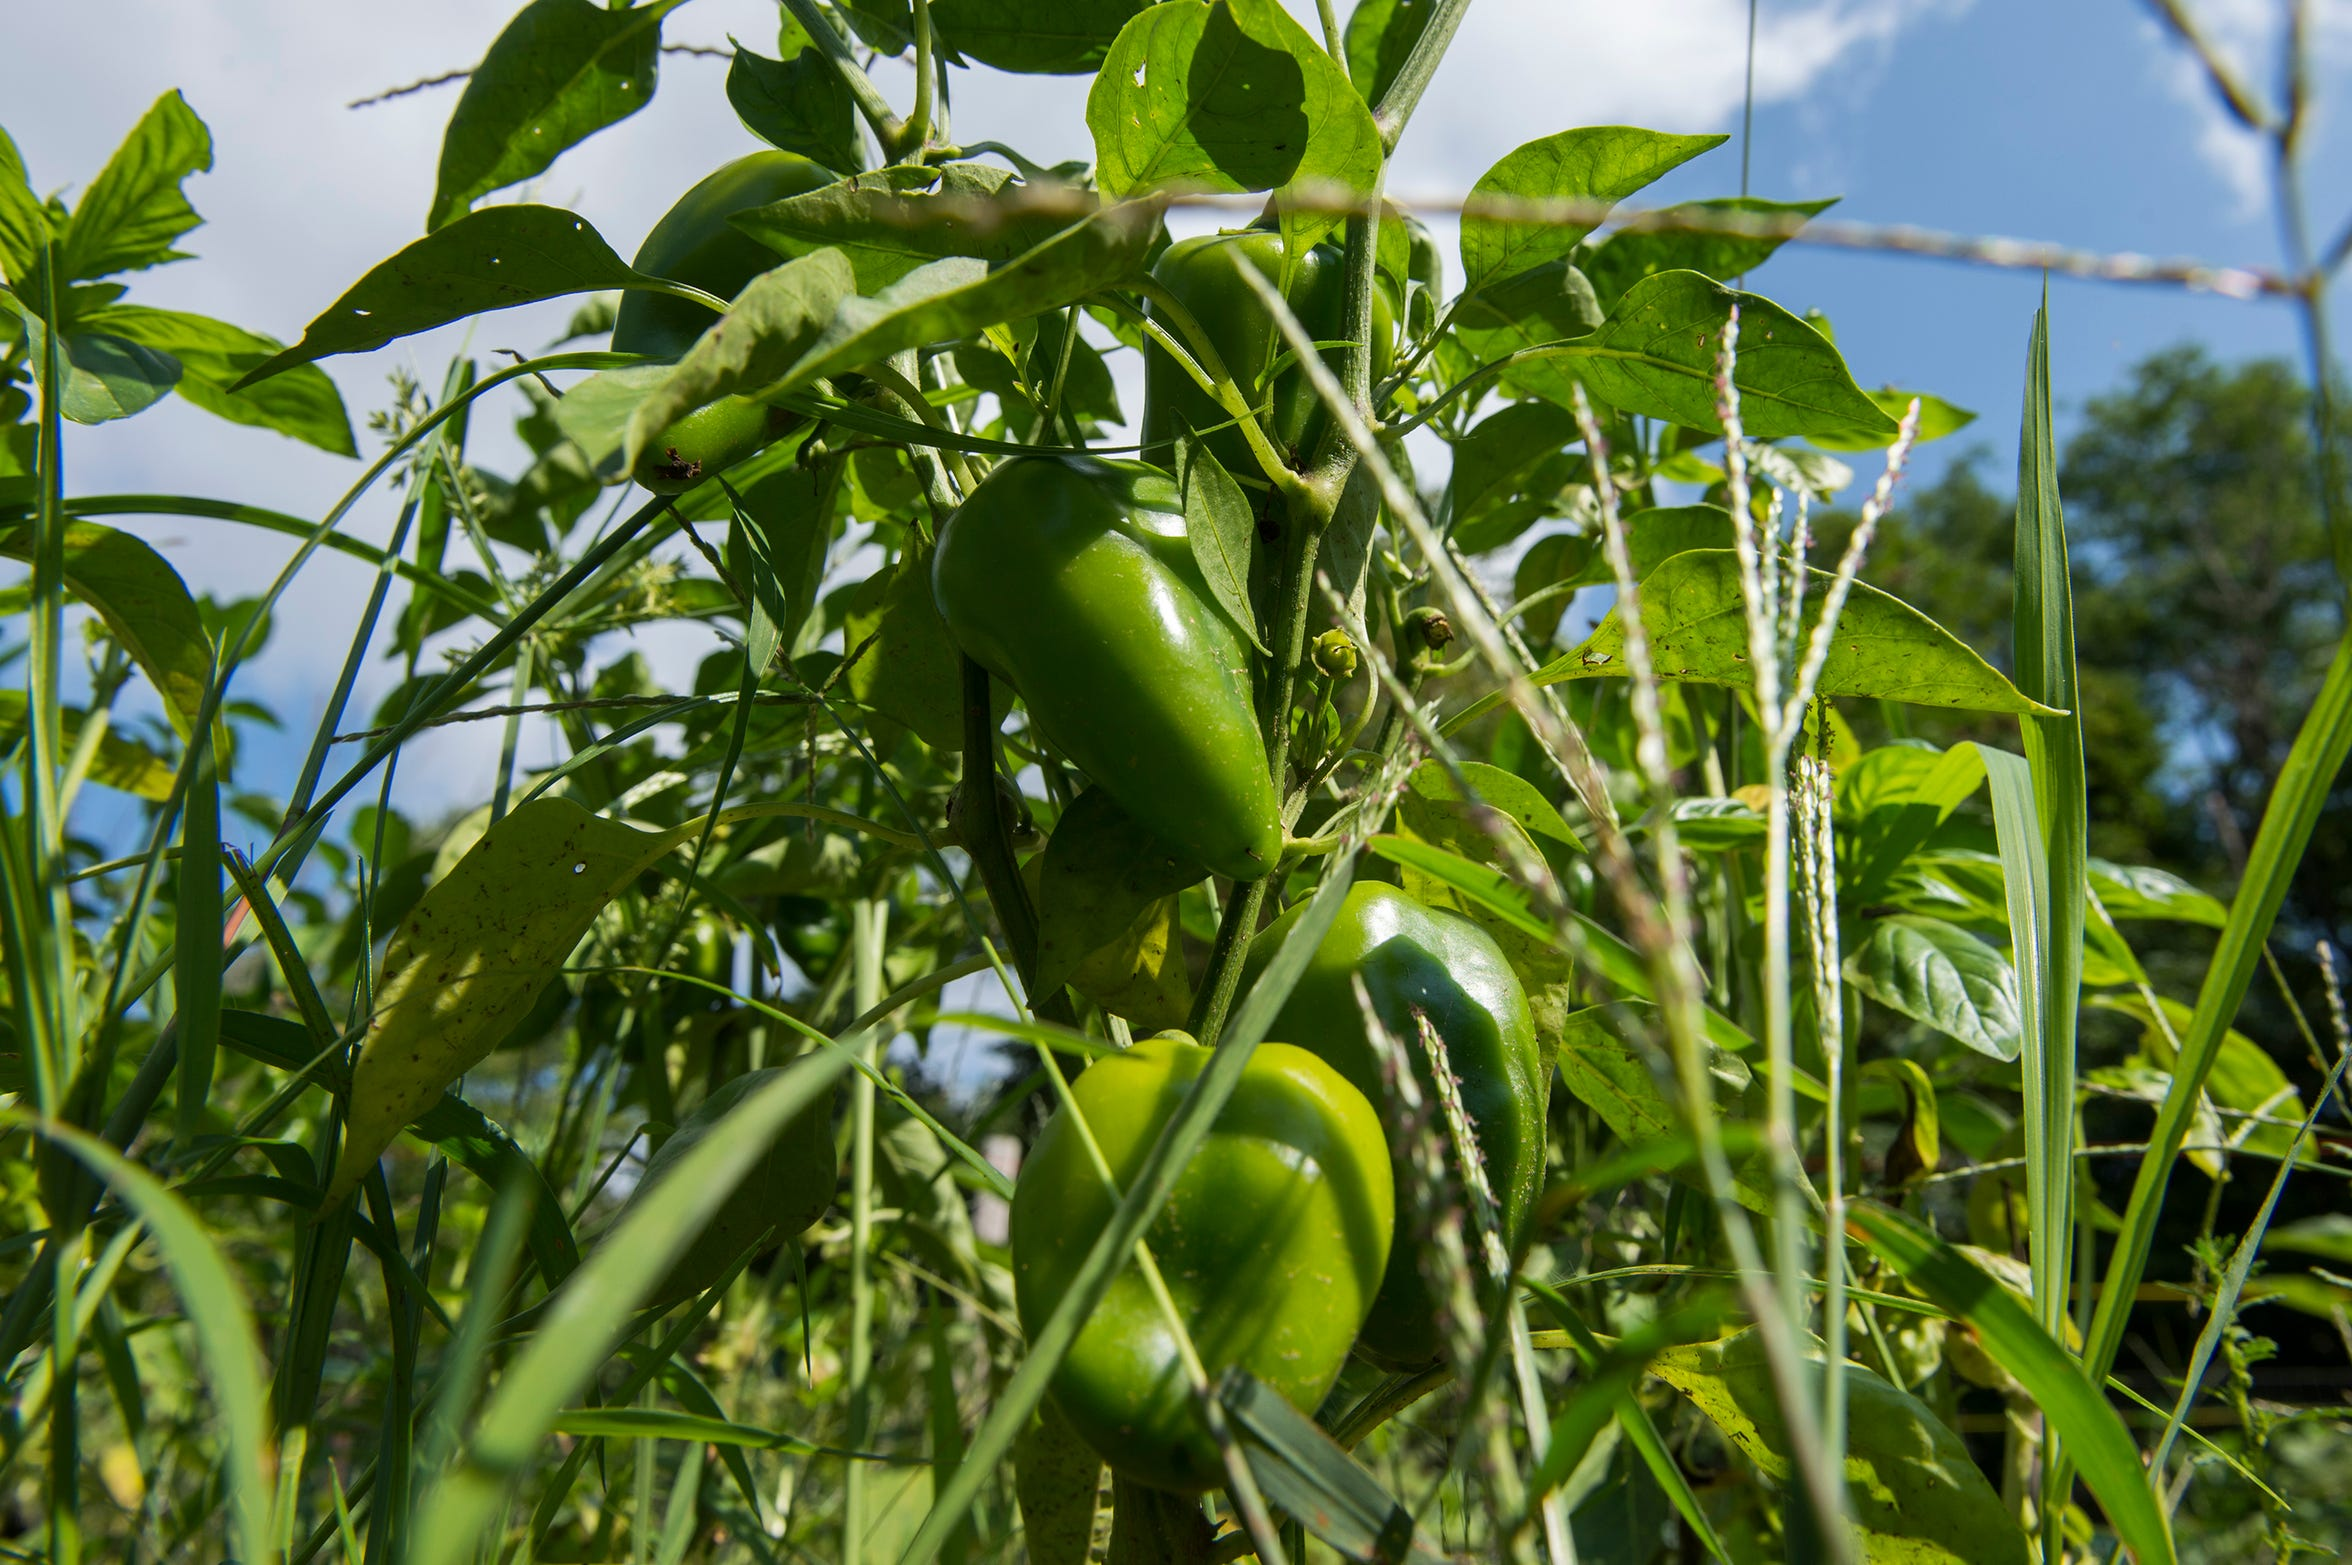 Peppers thrive in the sun at Free Haven Farms in Lawnside.